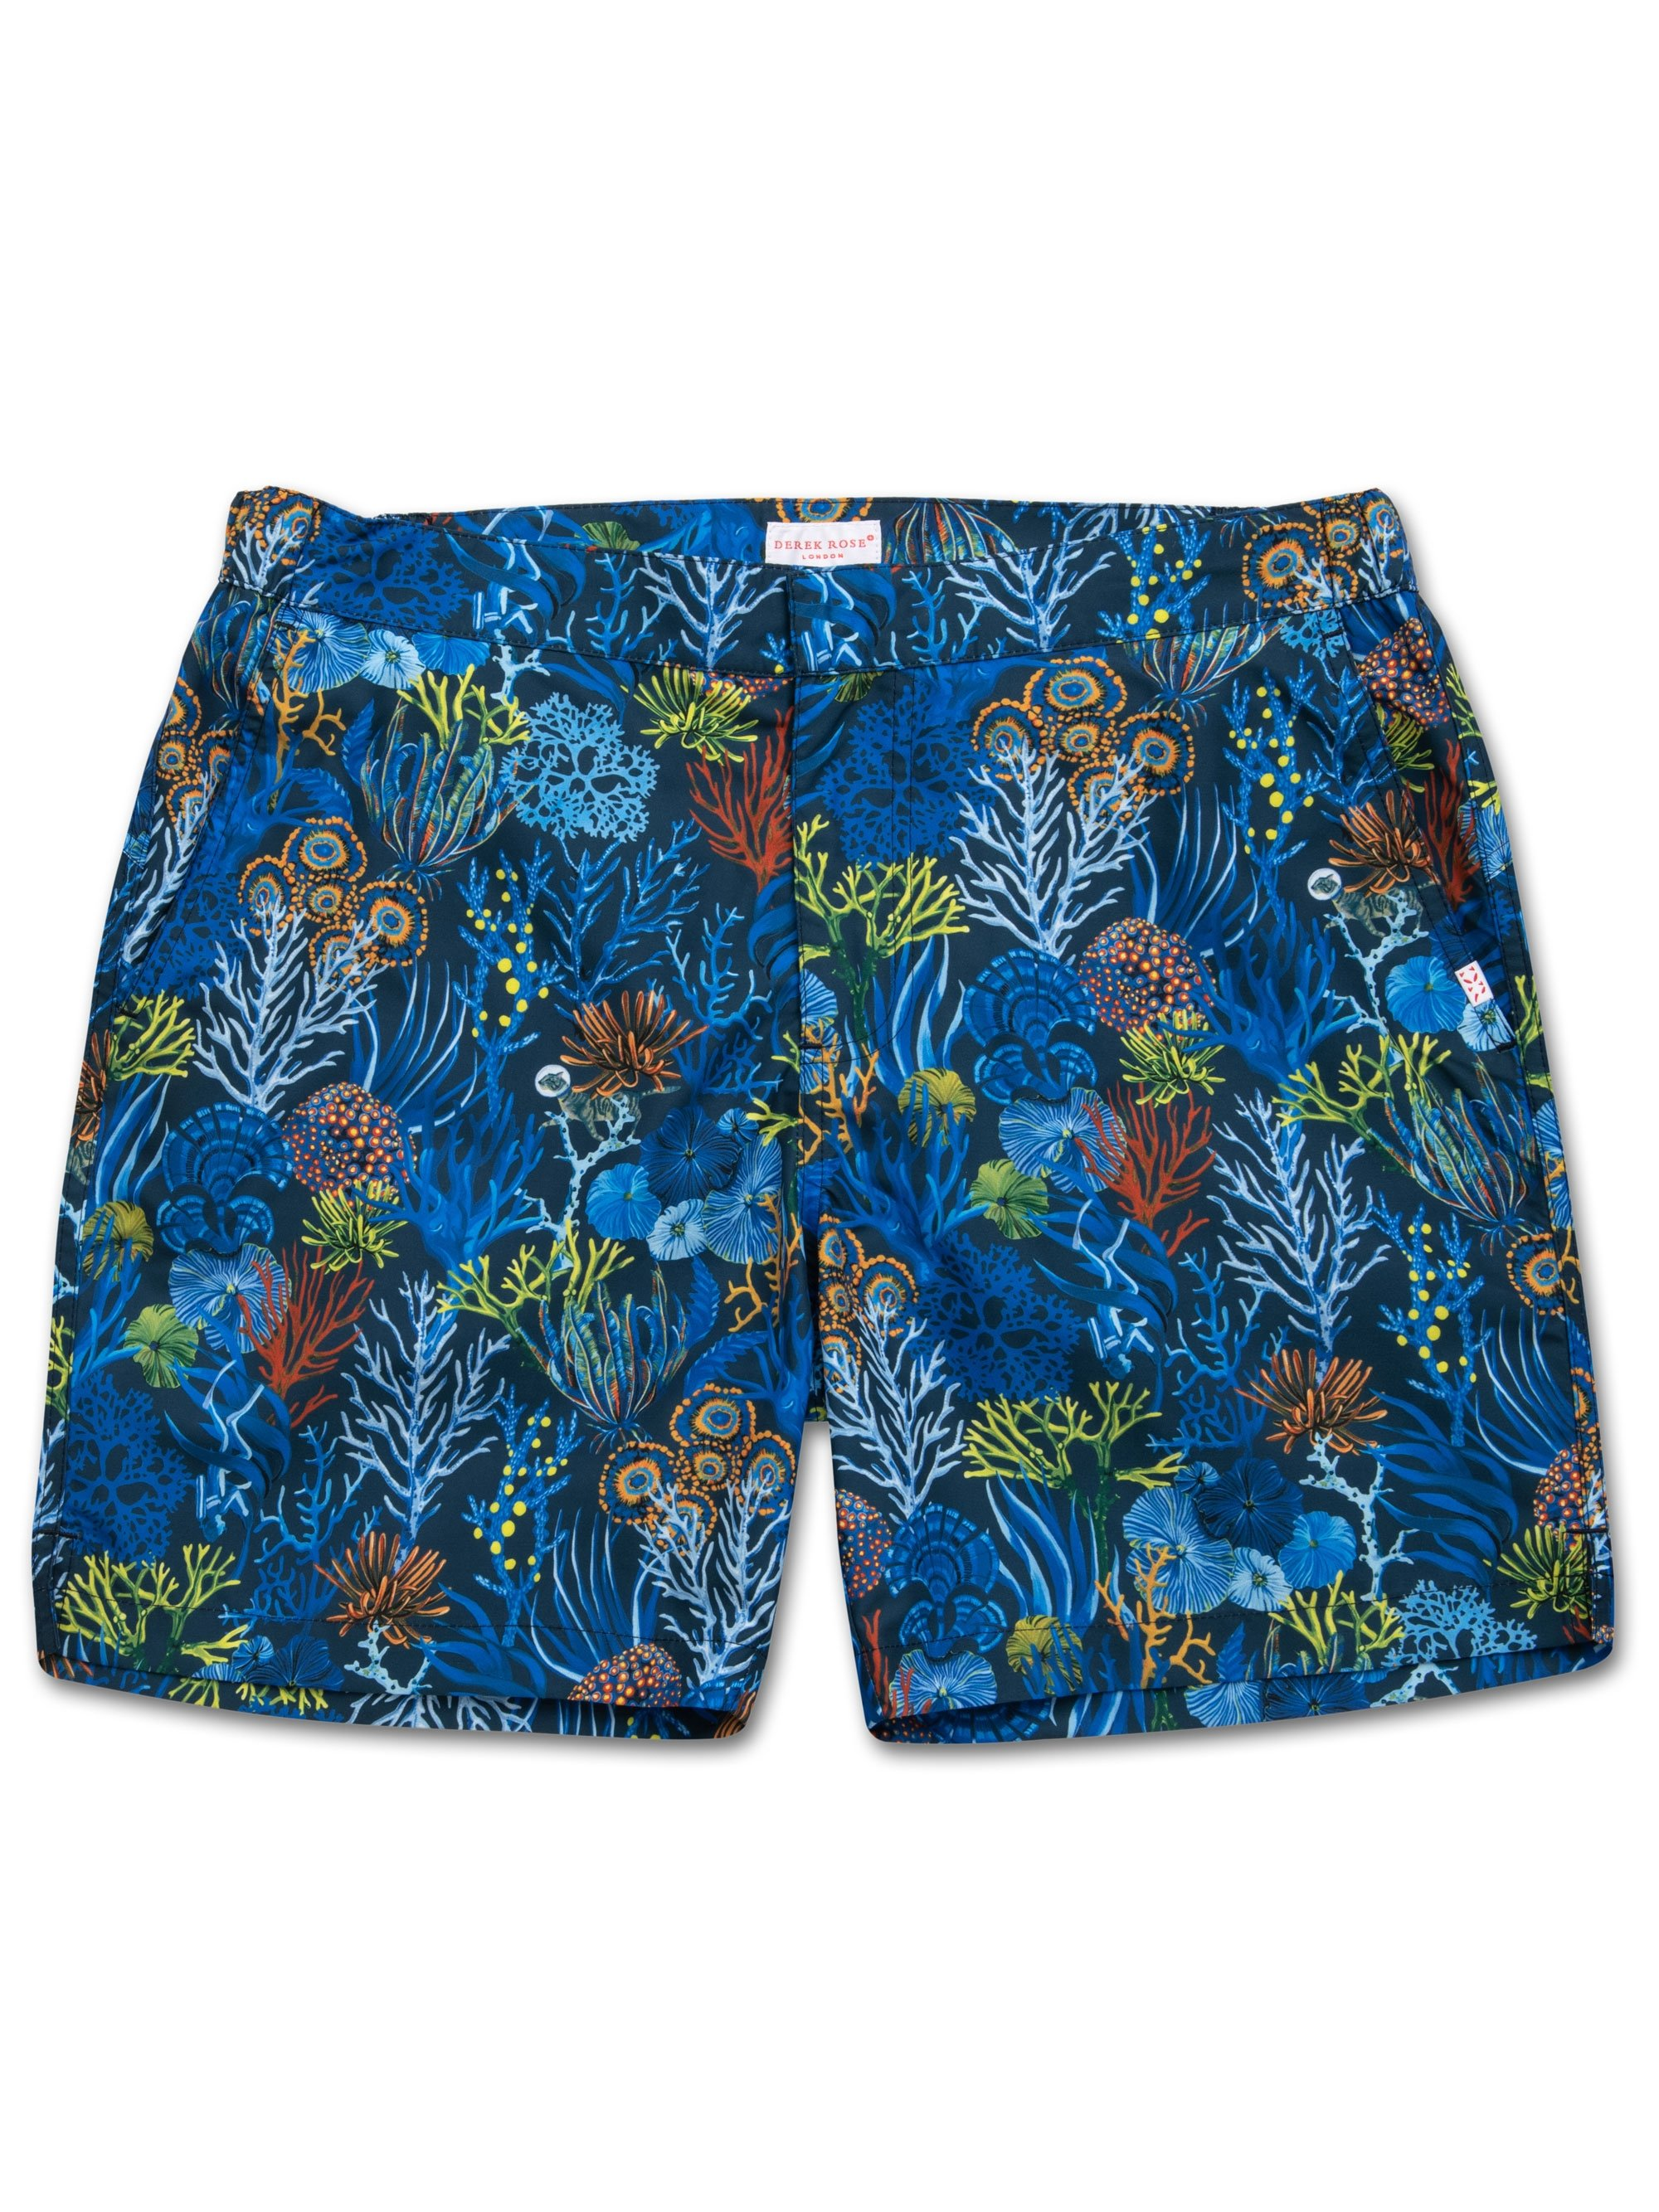 Men's Modern Fit Swim Shorts Maui 20 Multi